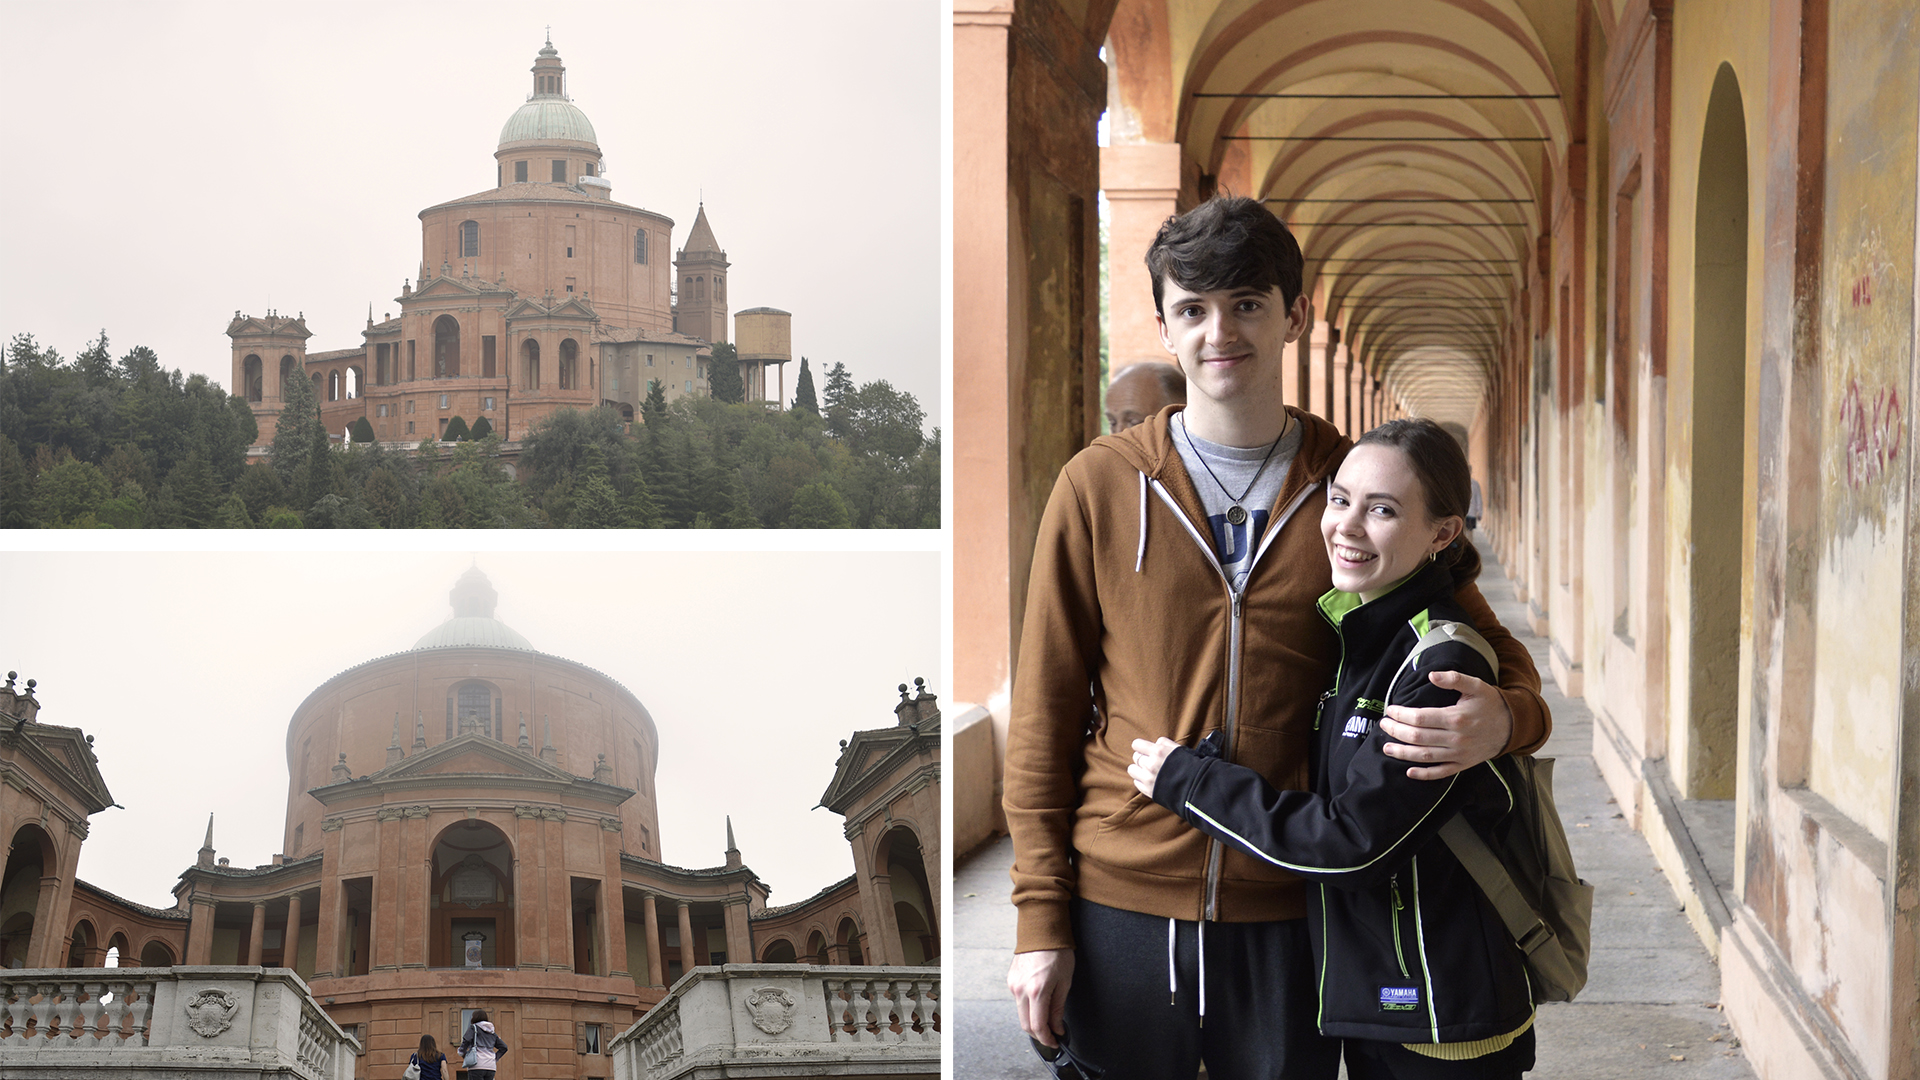 The Sanctuary of Madonna di San Luca - I loved this building, which features the longest portico in the world.